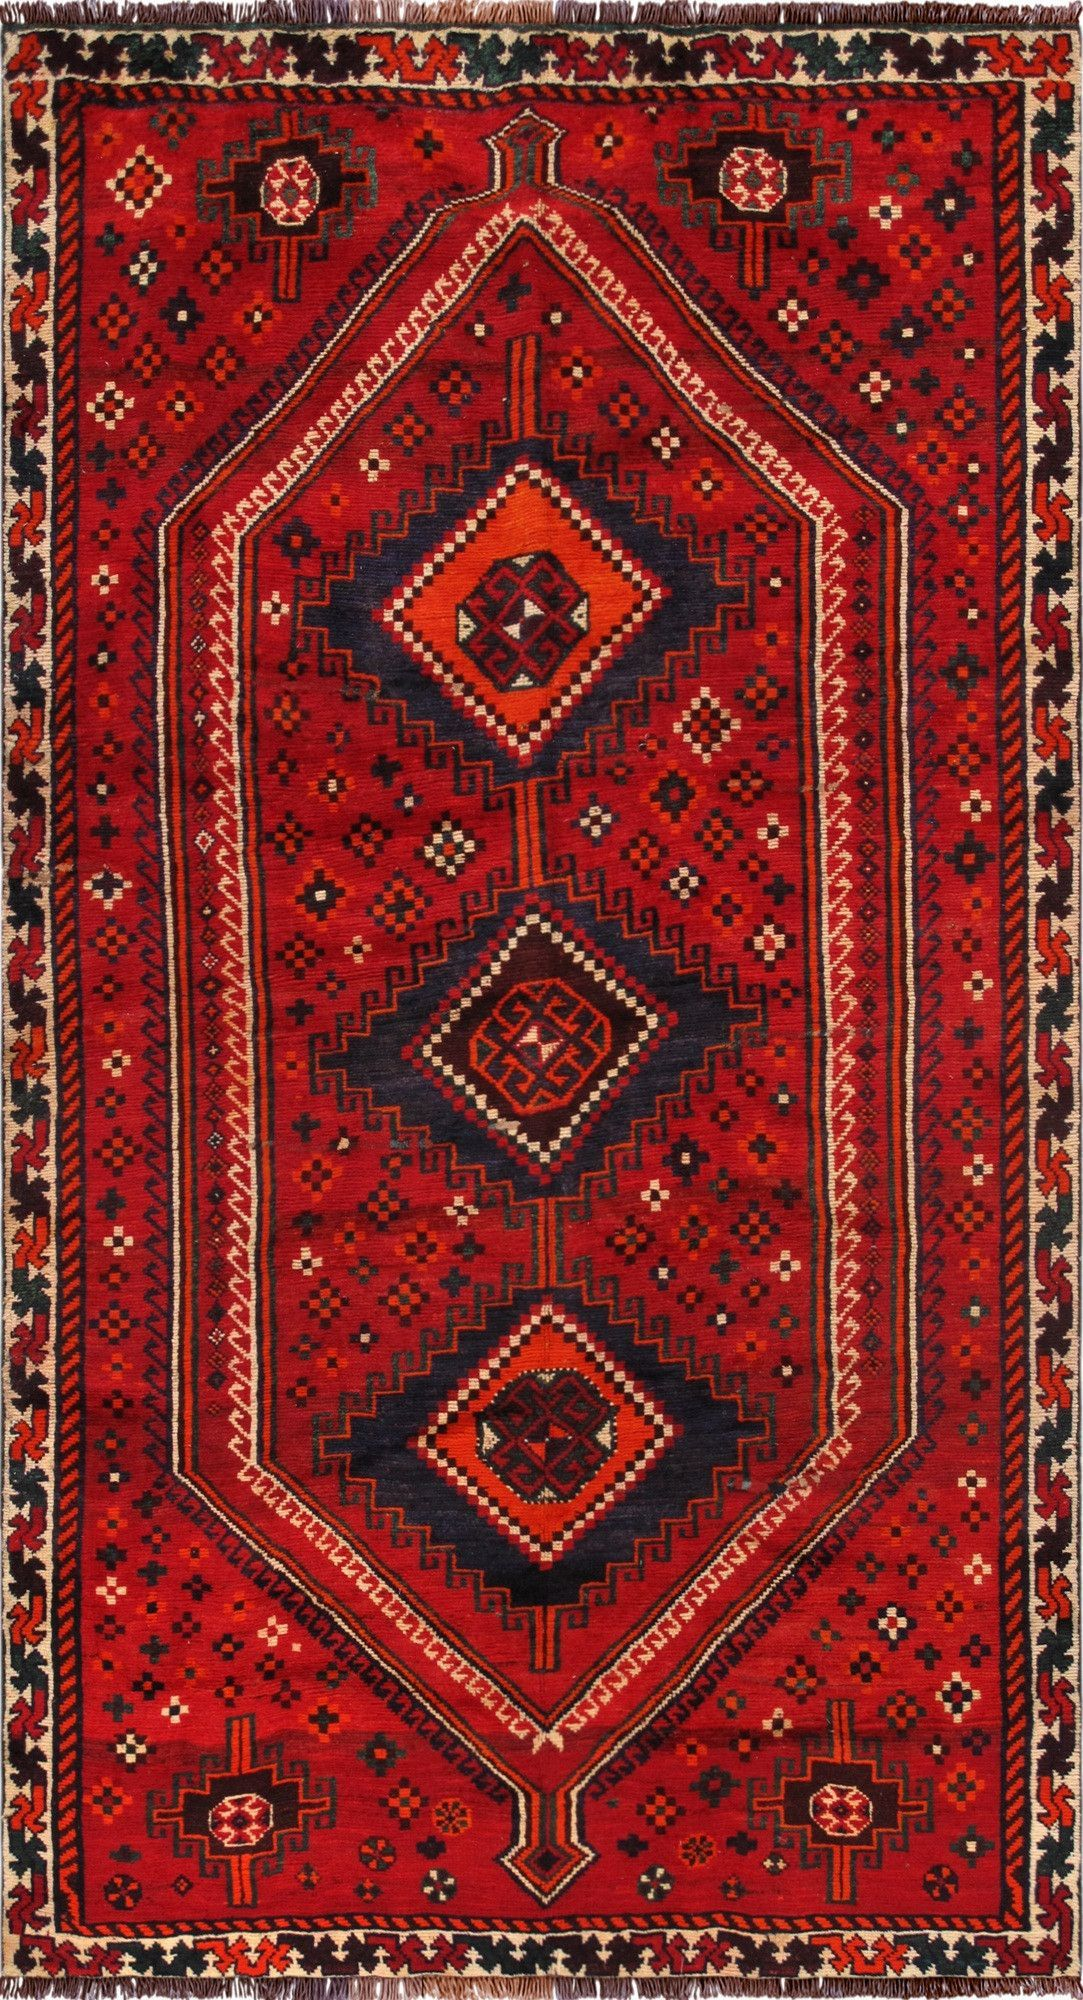 Vintage Persian Allover Handmade Area Rugs in 2020 Rugs